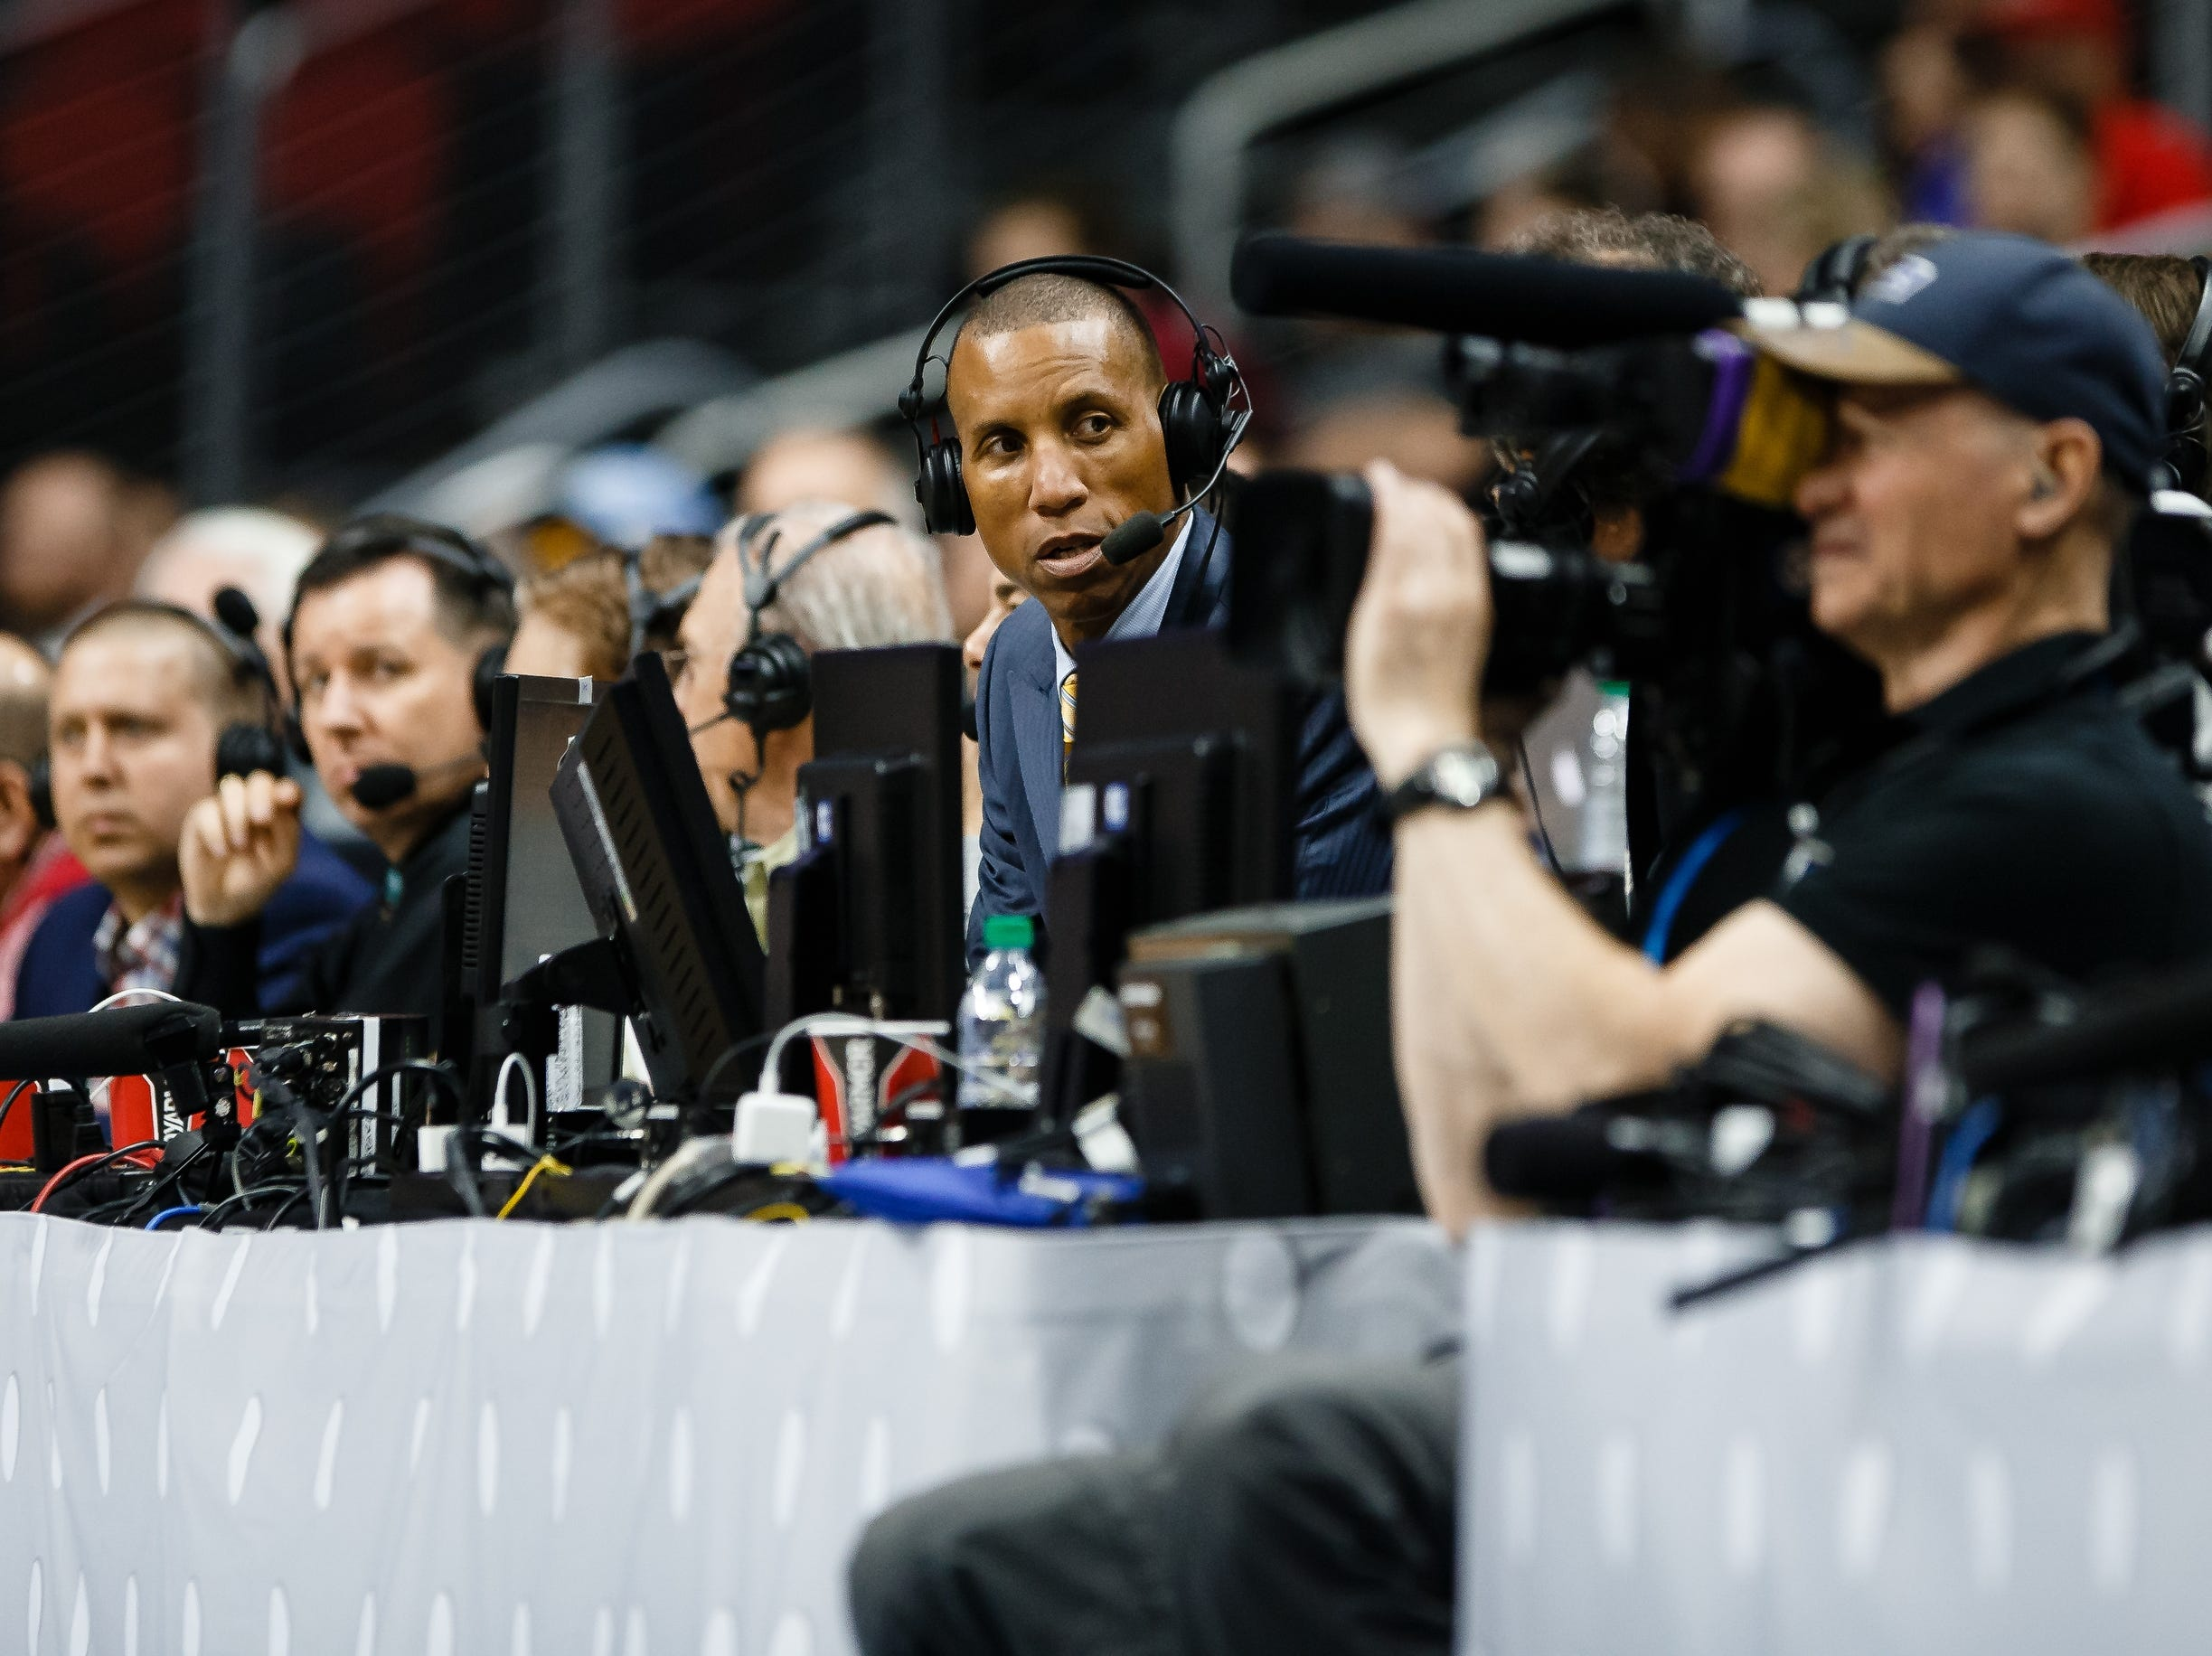 Reggie Miller announces the game as Louisville takes on Minnesota during their NCAA Division I Men's Basketball Championship First Round game on Thursday, March 21, 2019, in Des Moines. Minnesota takes a 38-33 lead into halftime.